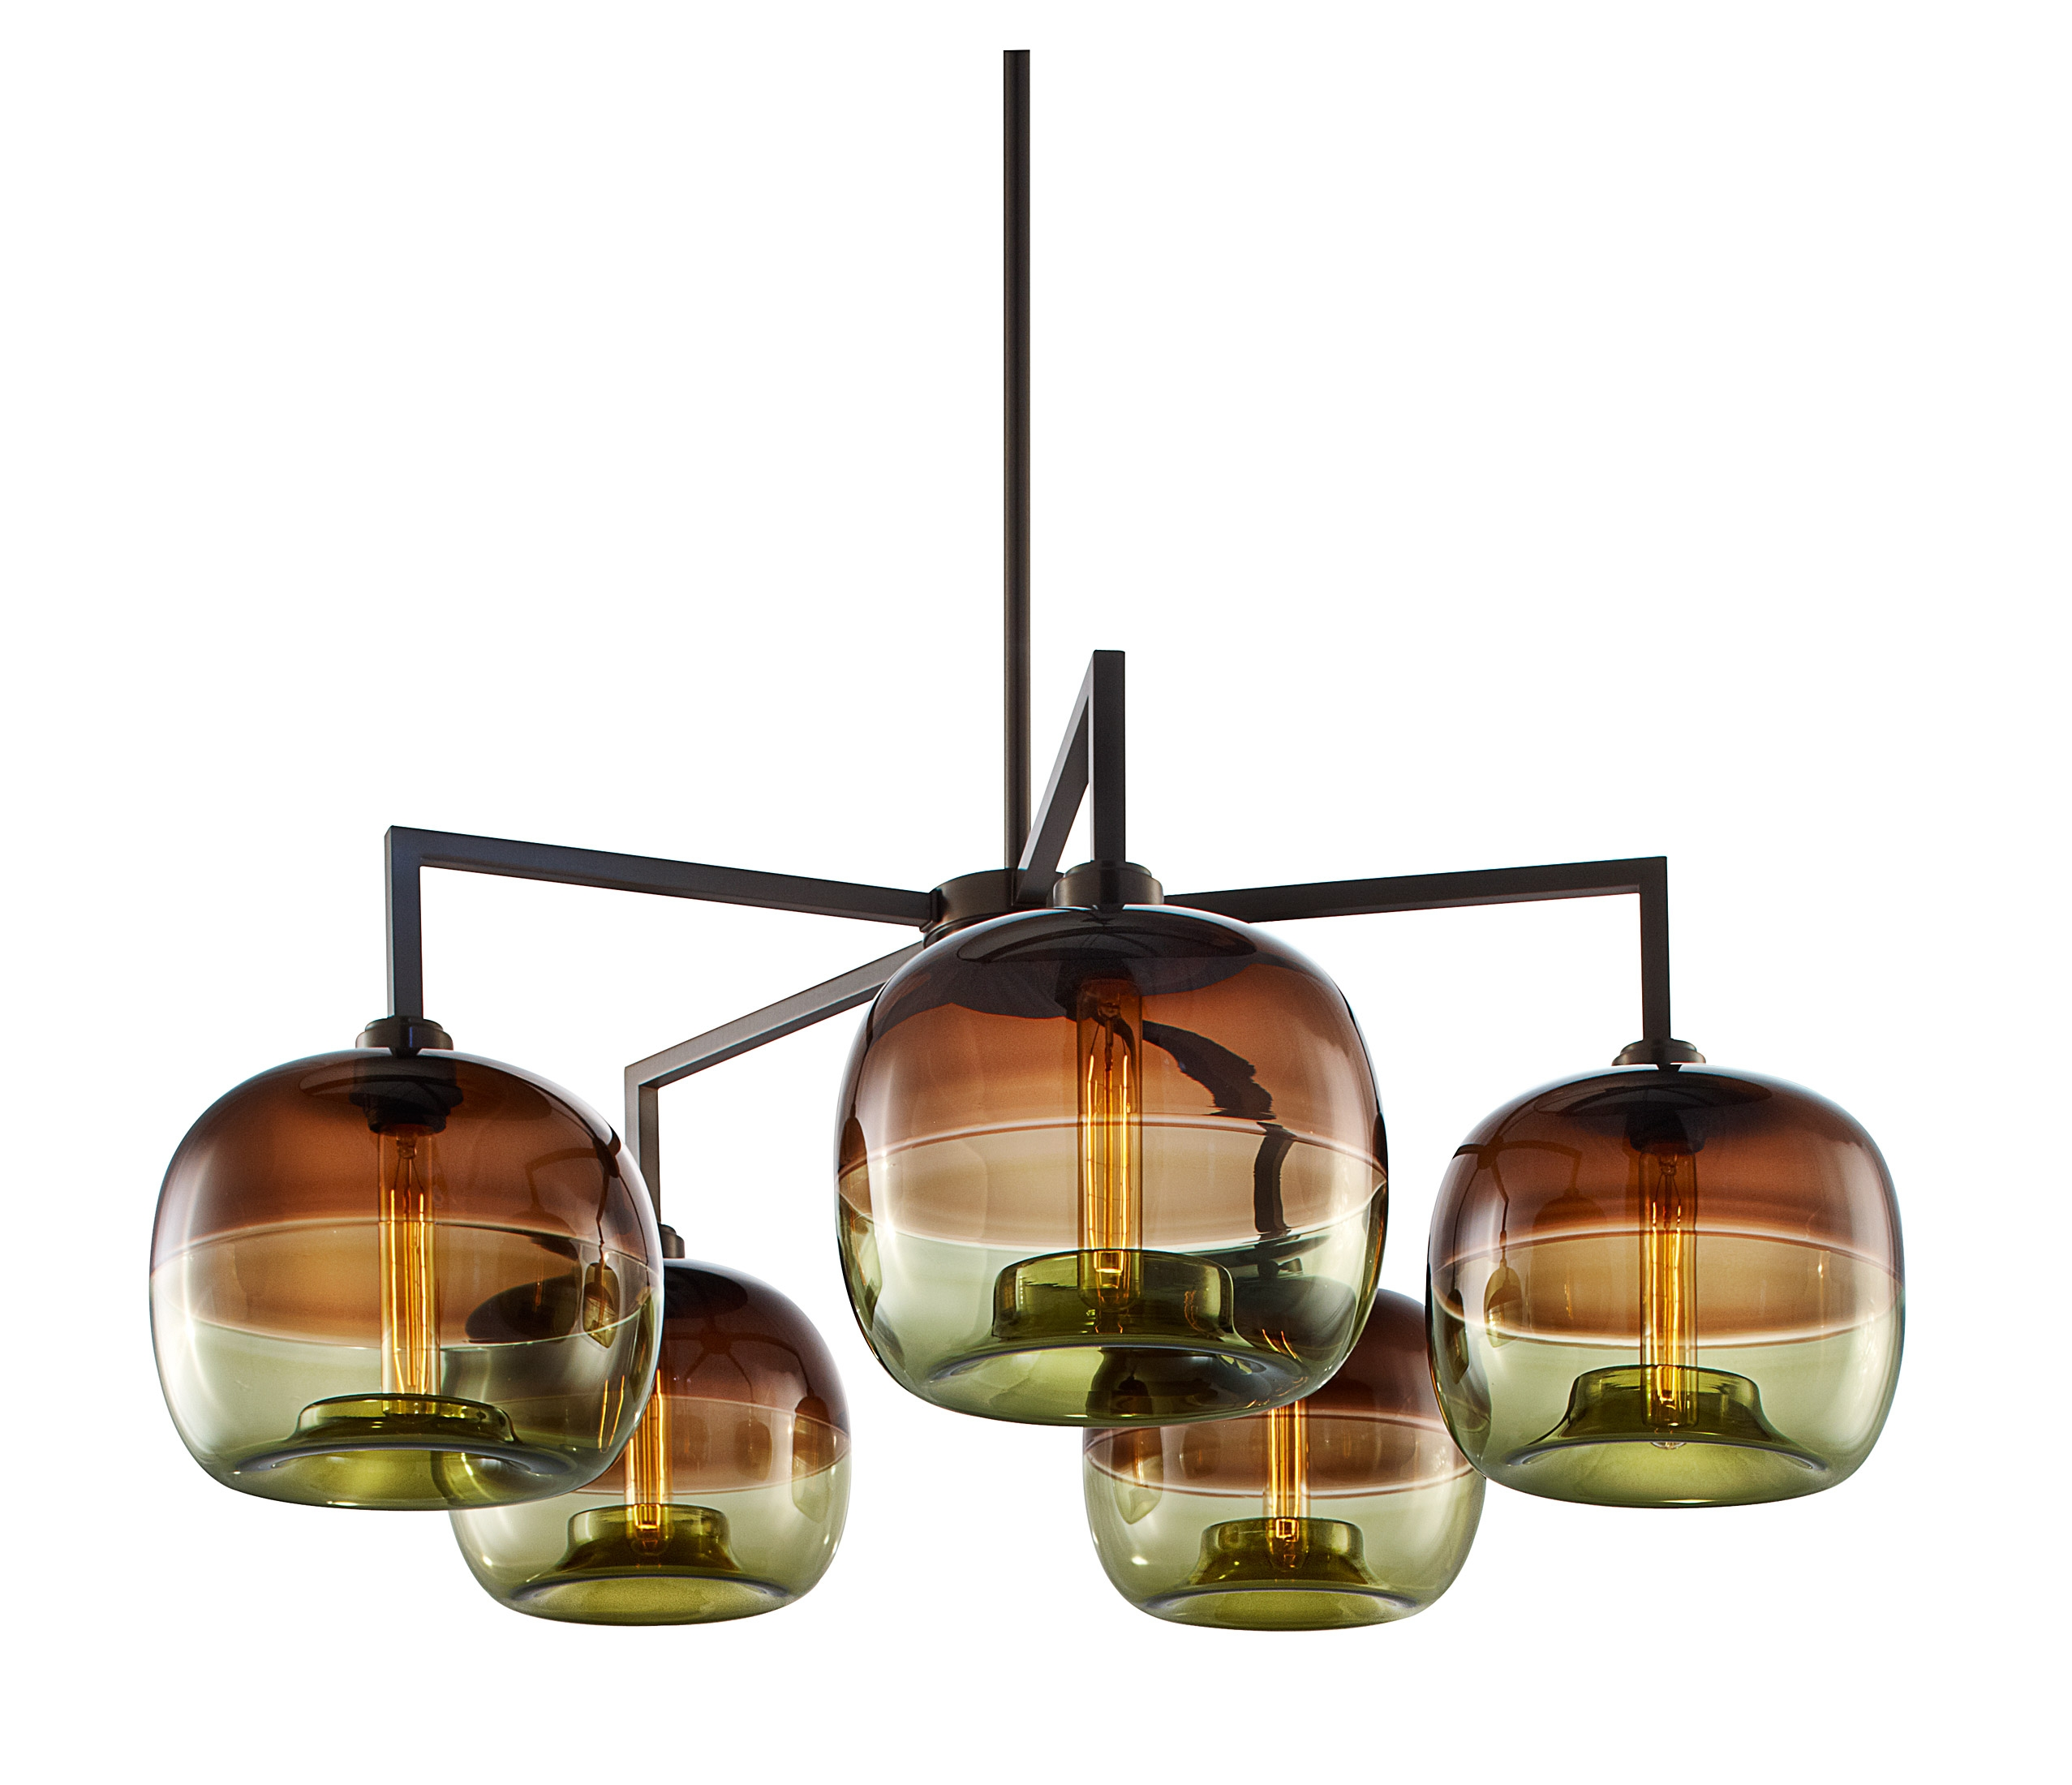 Quill 5 Modern Chandelier With Encalmo Pendant Lamps Modern Inside Modern Chandelier Lighting (Photo 15 of 15)